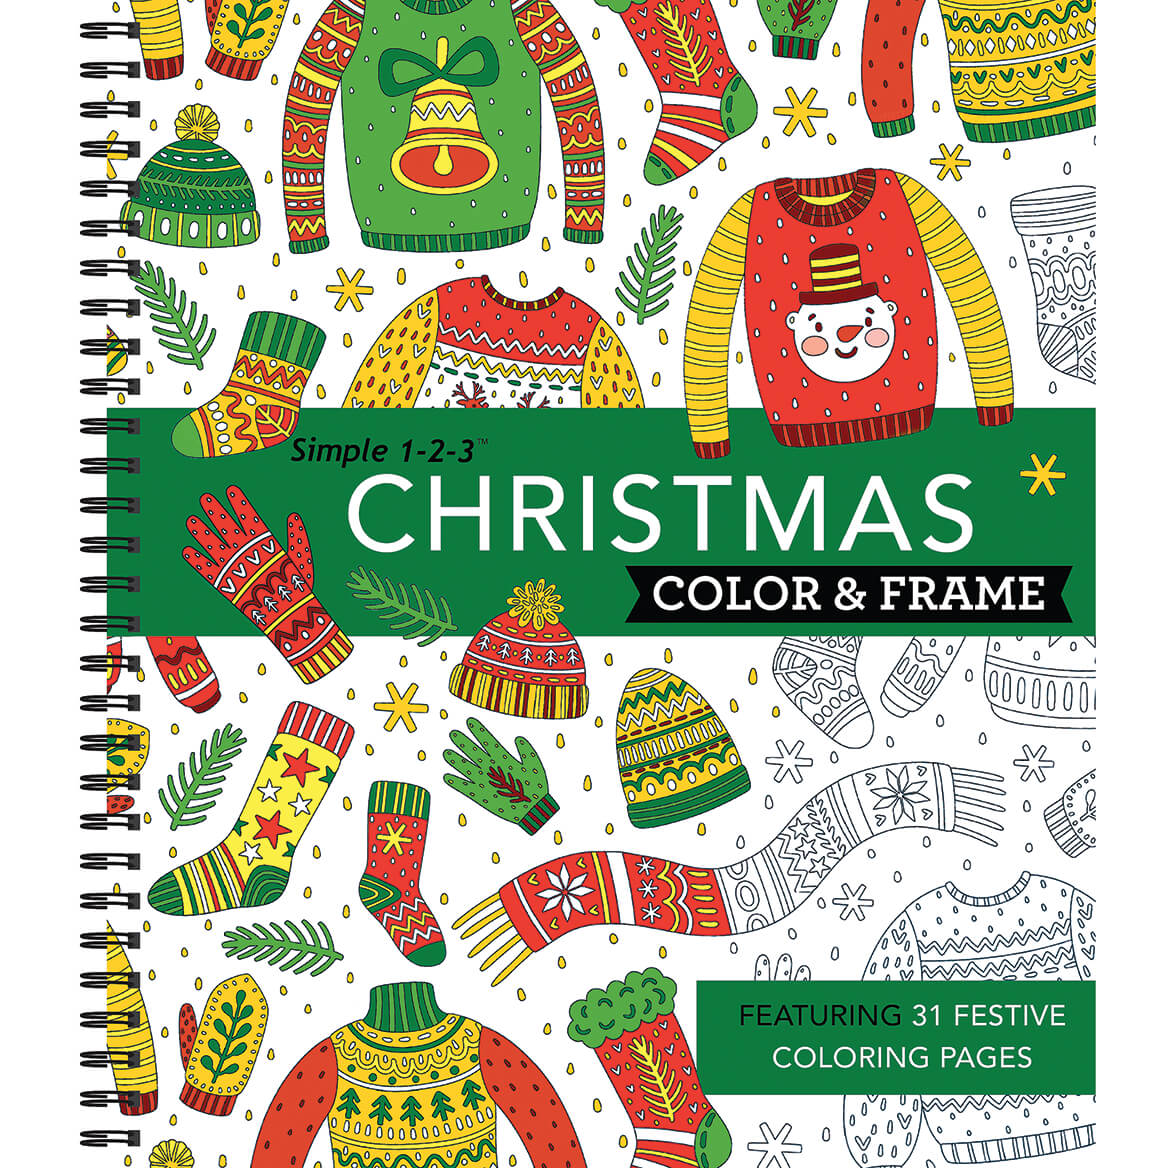 Simple 1-2-3™ Christmas Color & Frame Coloring Book-370737